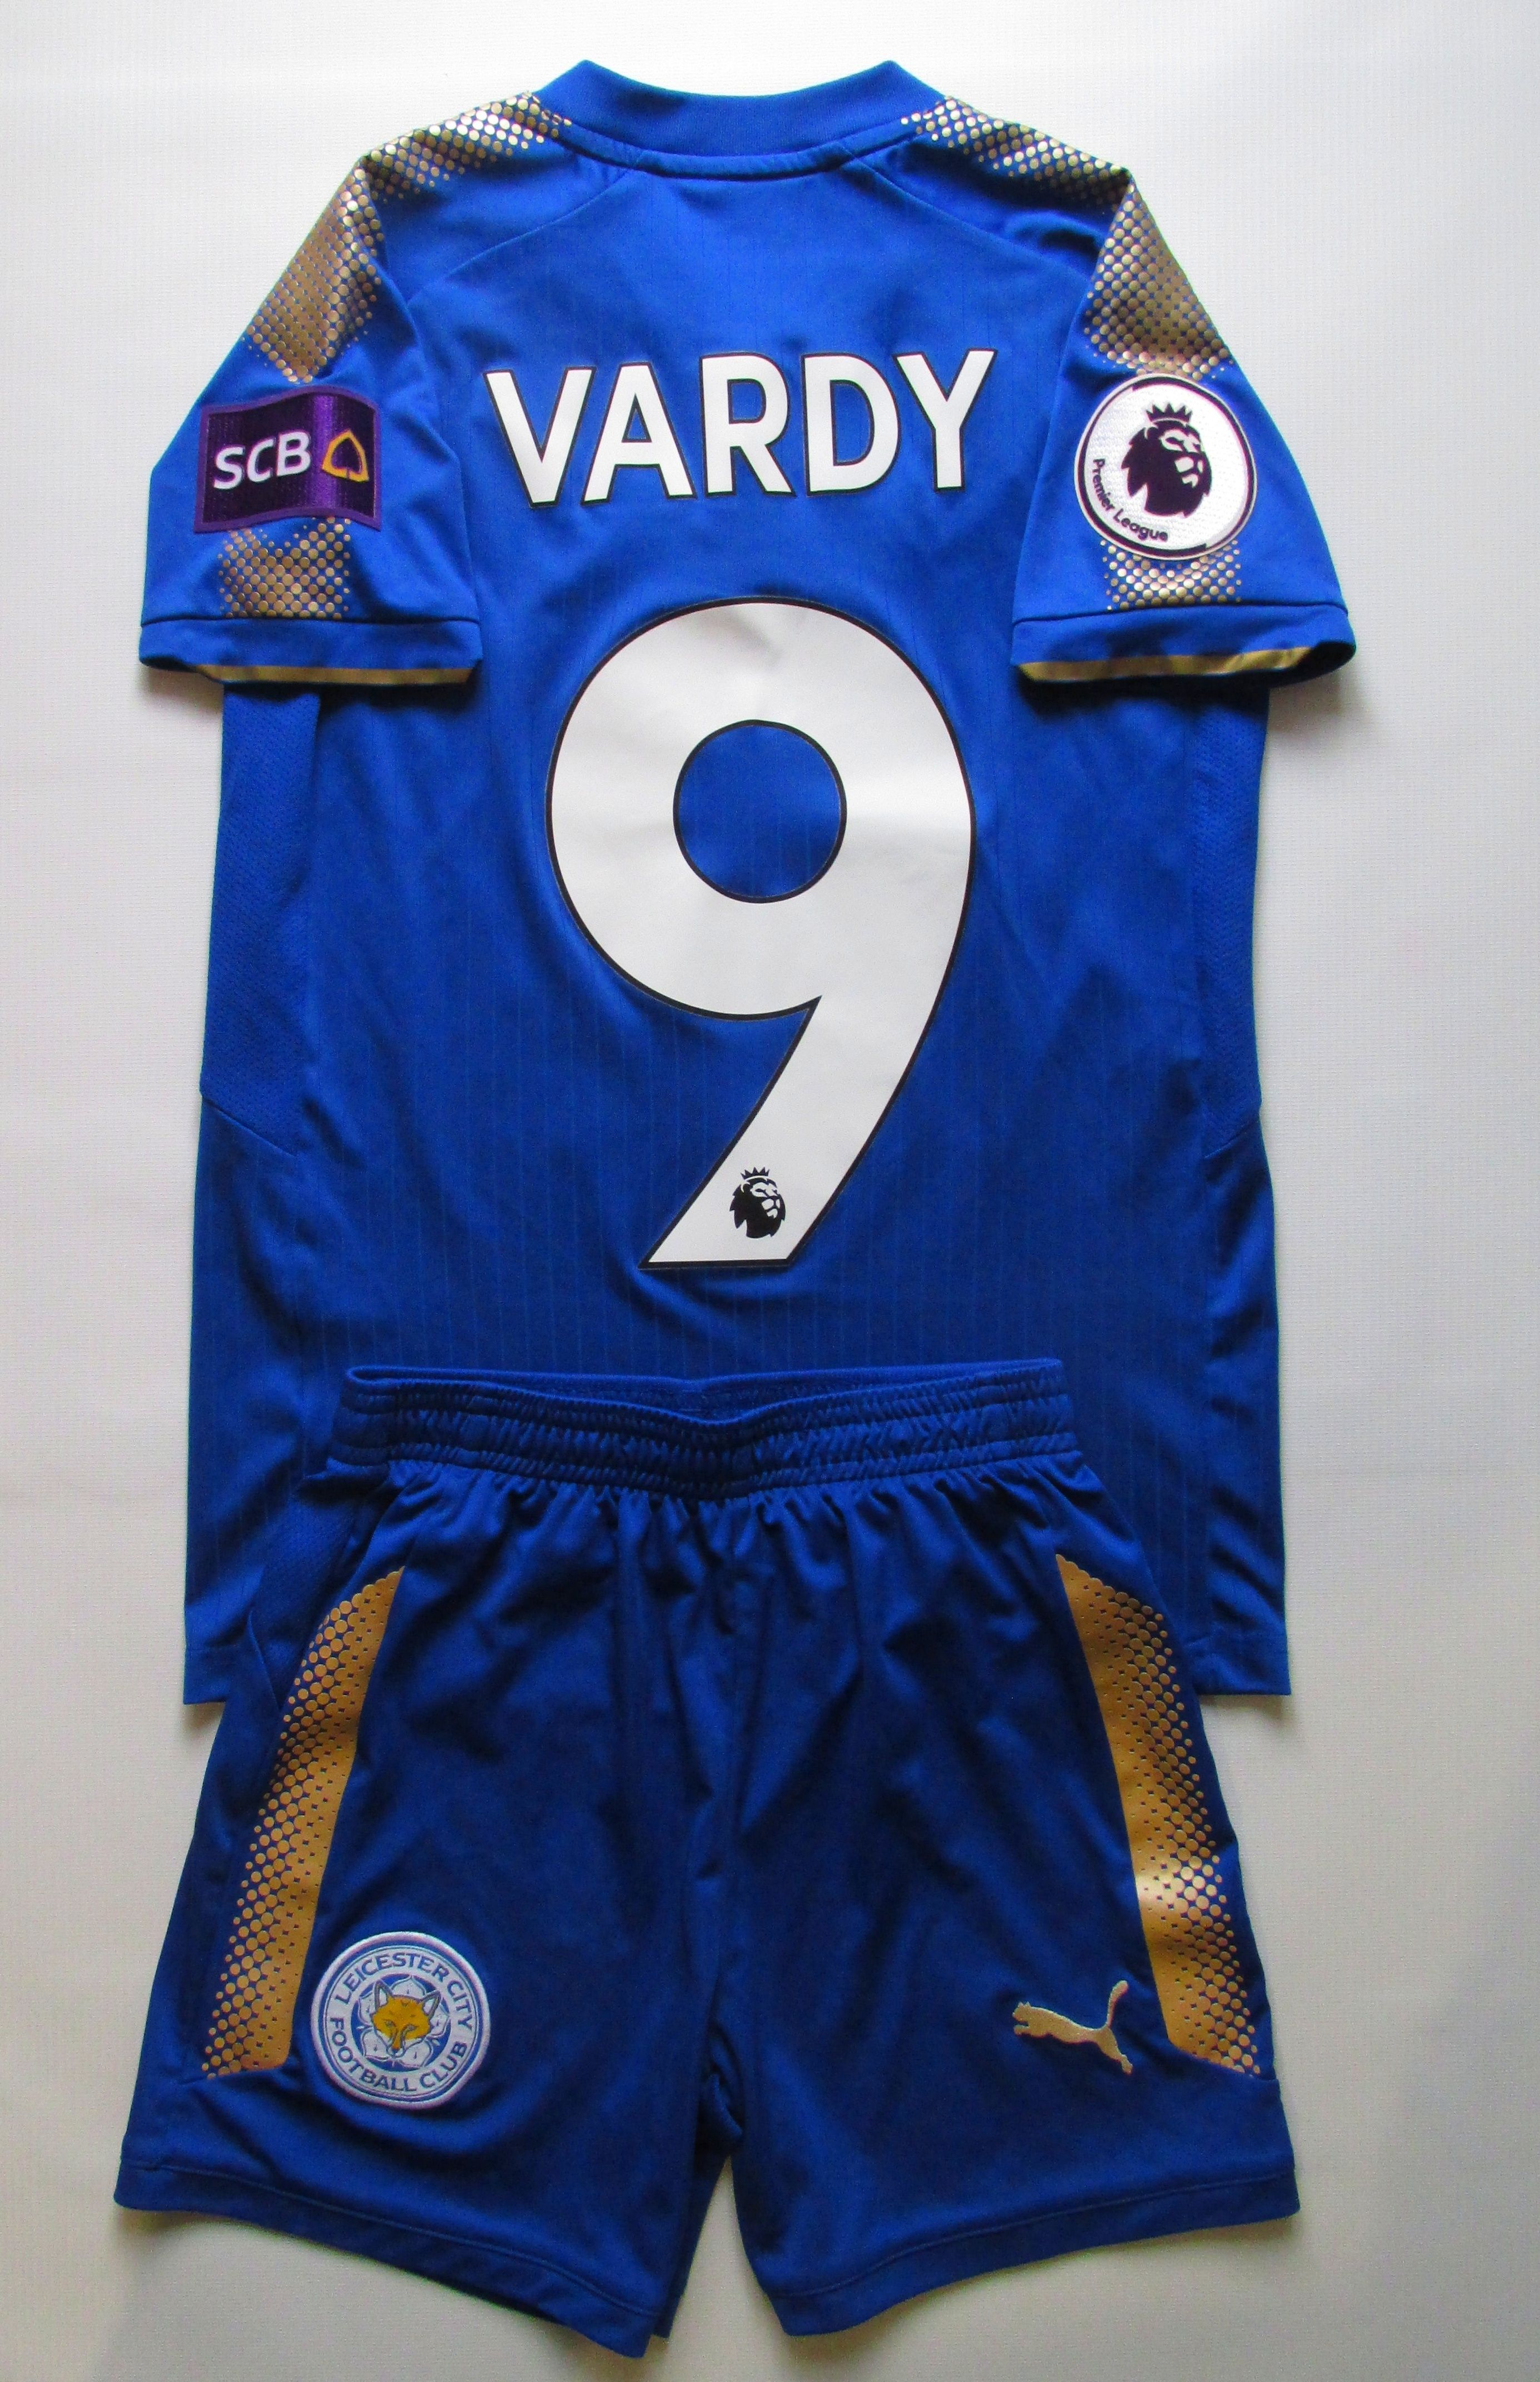 Leicester City 2017 2018 Home Kids Football Kit By Puma Jamie Vardy In 2020 Kids Football Kits Football Kits Leicester City